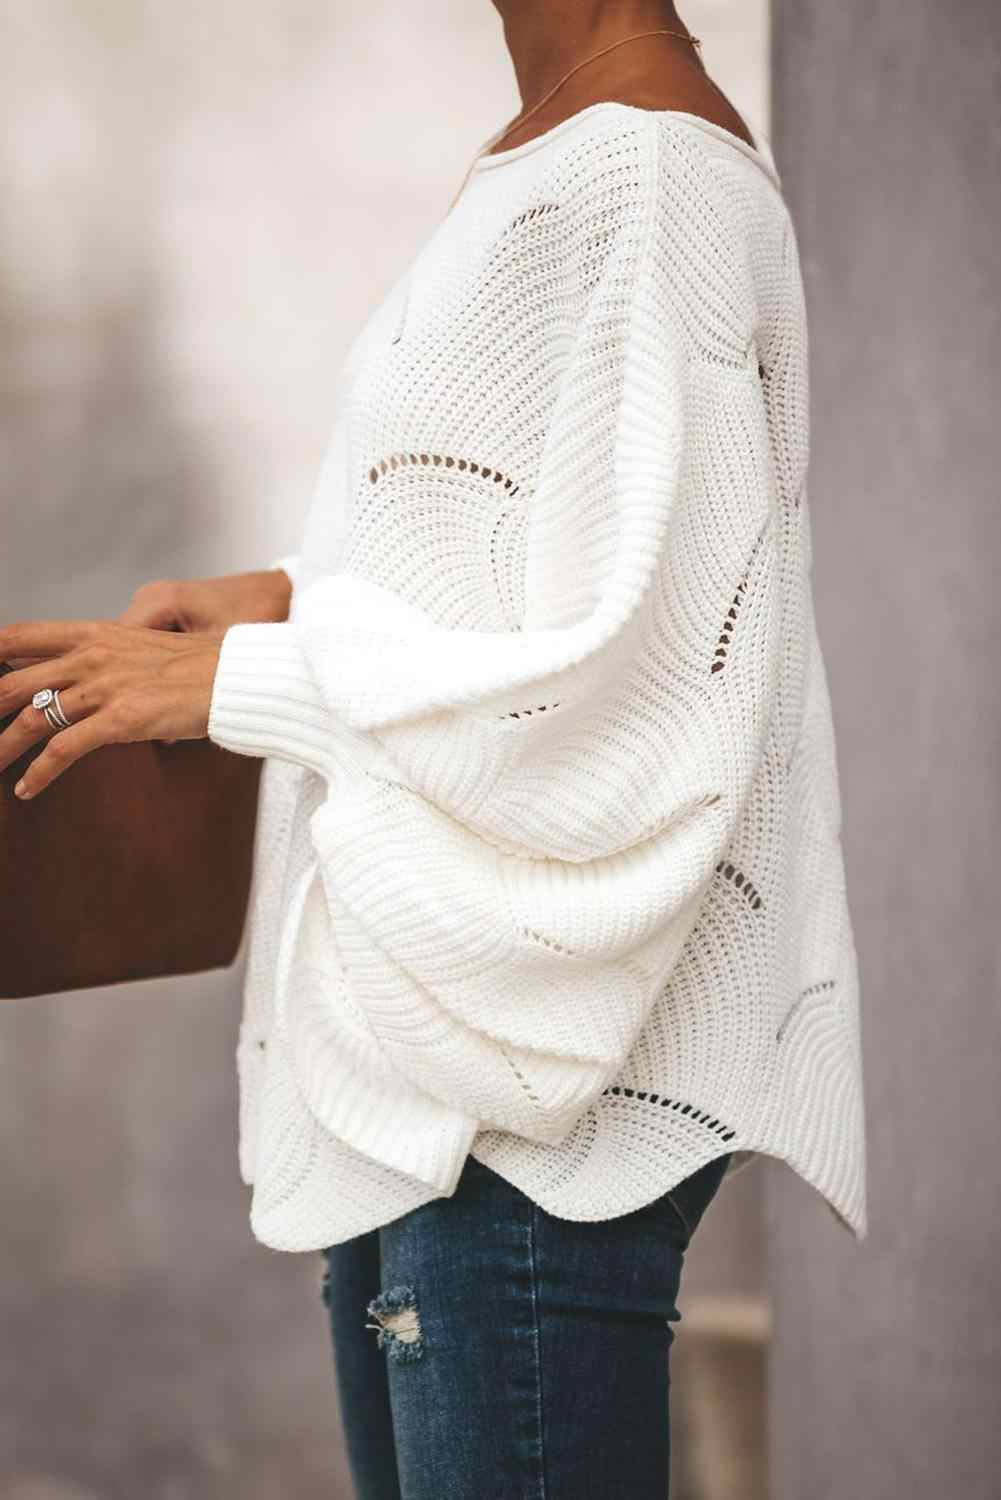 Echoine Gray/White/Black Wave Hem Long Batwing Sleeve Hollow Out Elegant Casual Sweater Top Women Autumn Winter Loose Sweater